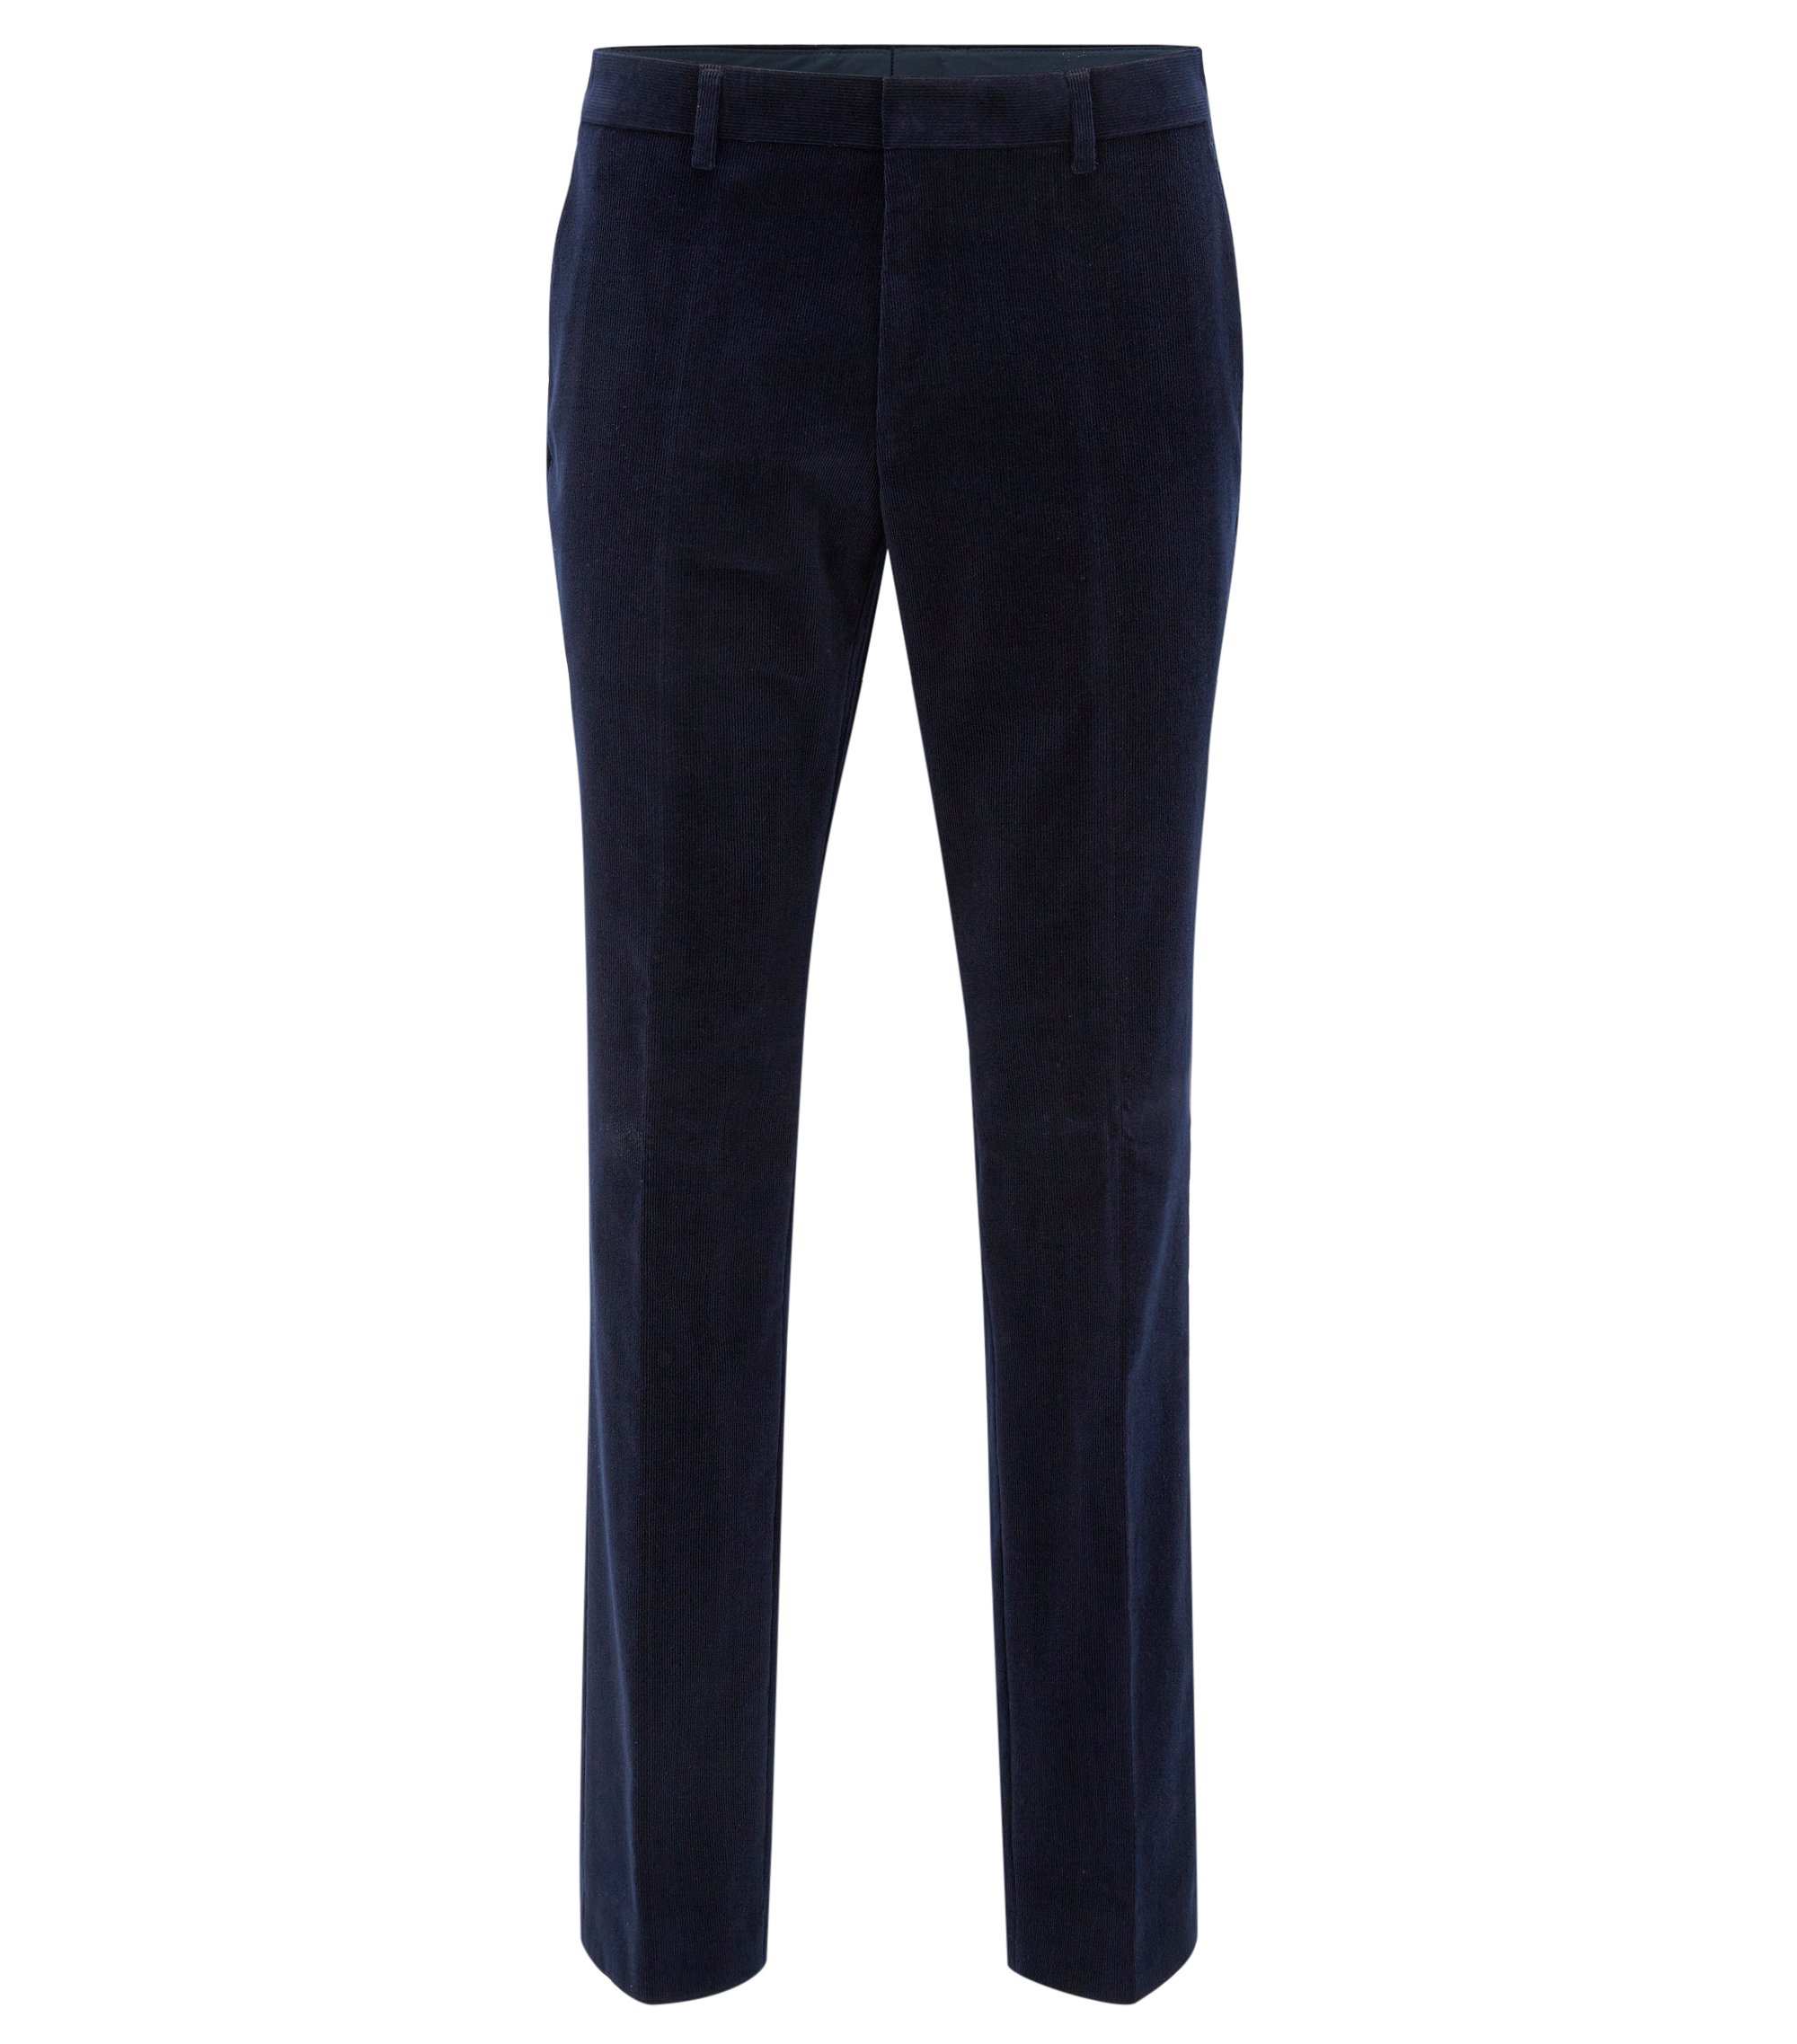 Corduroy Dress Pant, Slim Fit | Genesis, Dark Blue